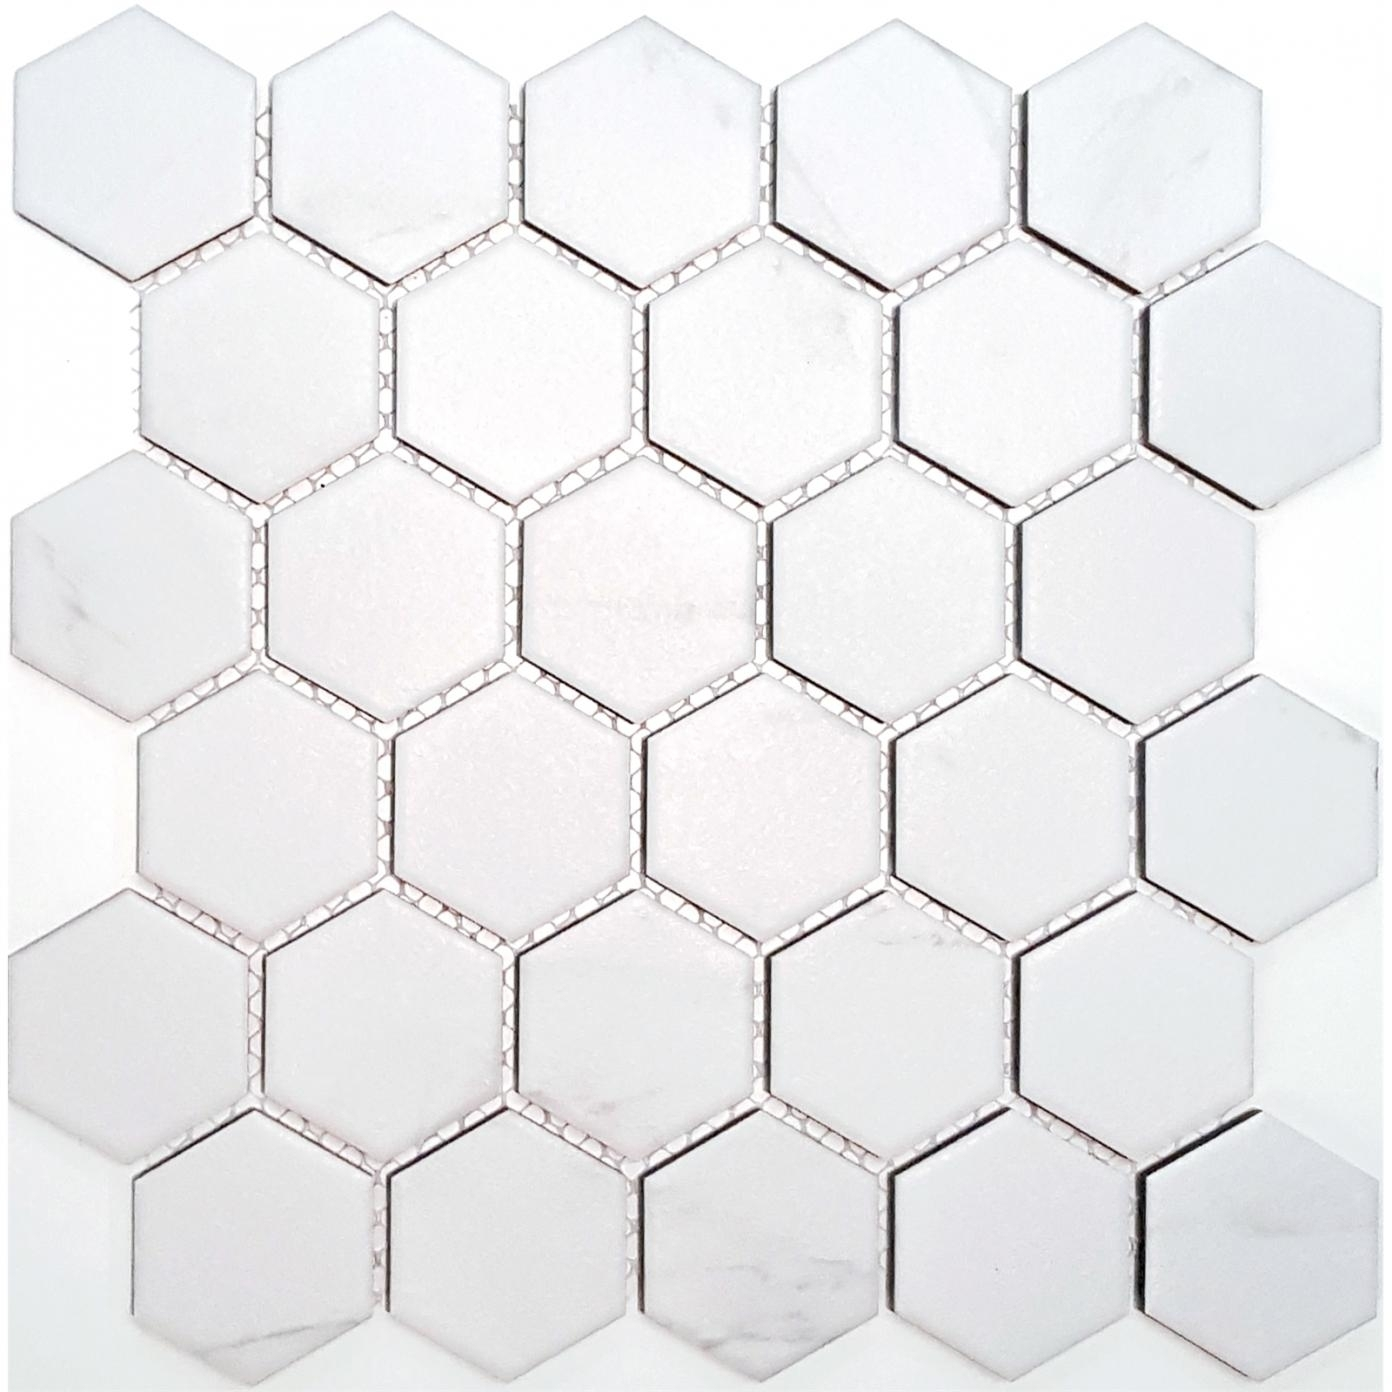 1392x1392 14 Tile Stickers Bunnings Ideas